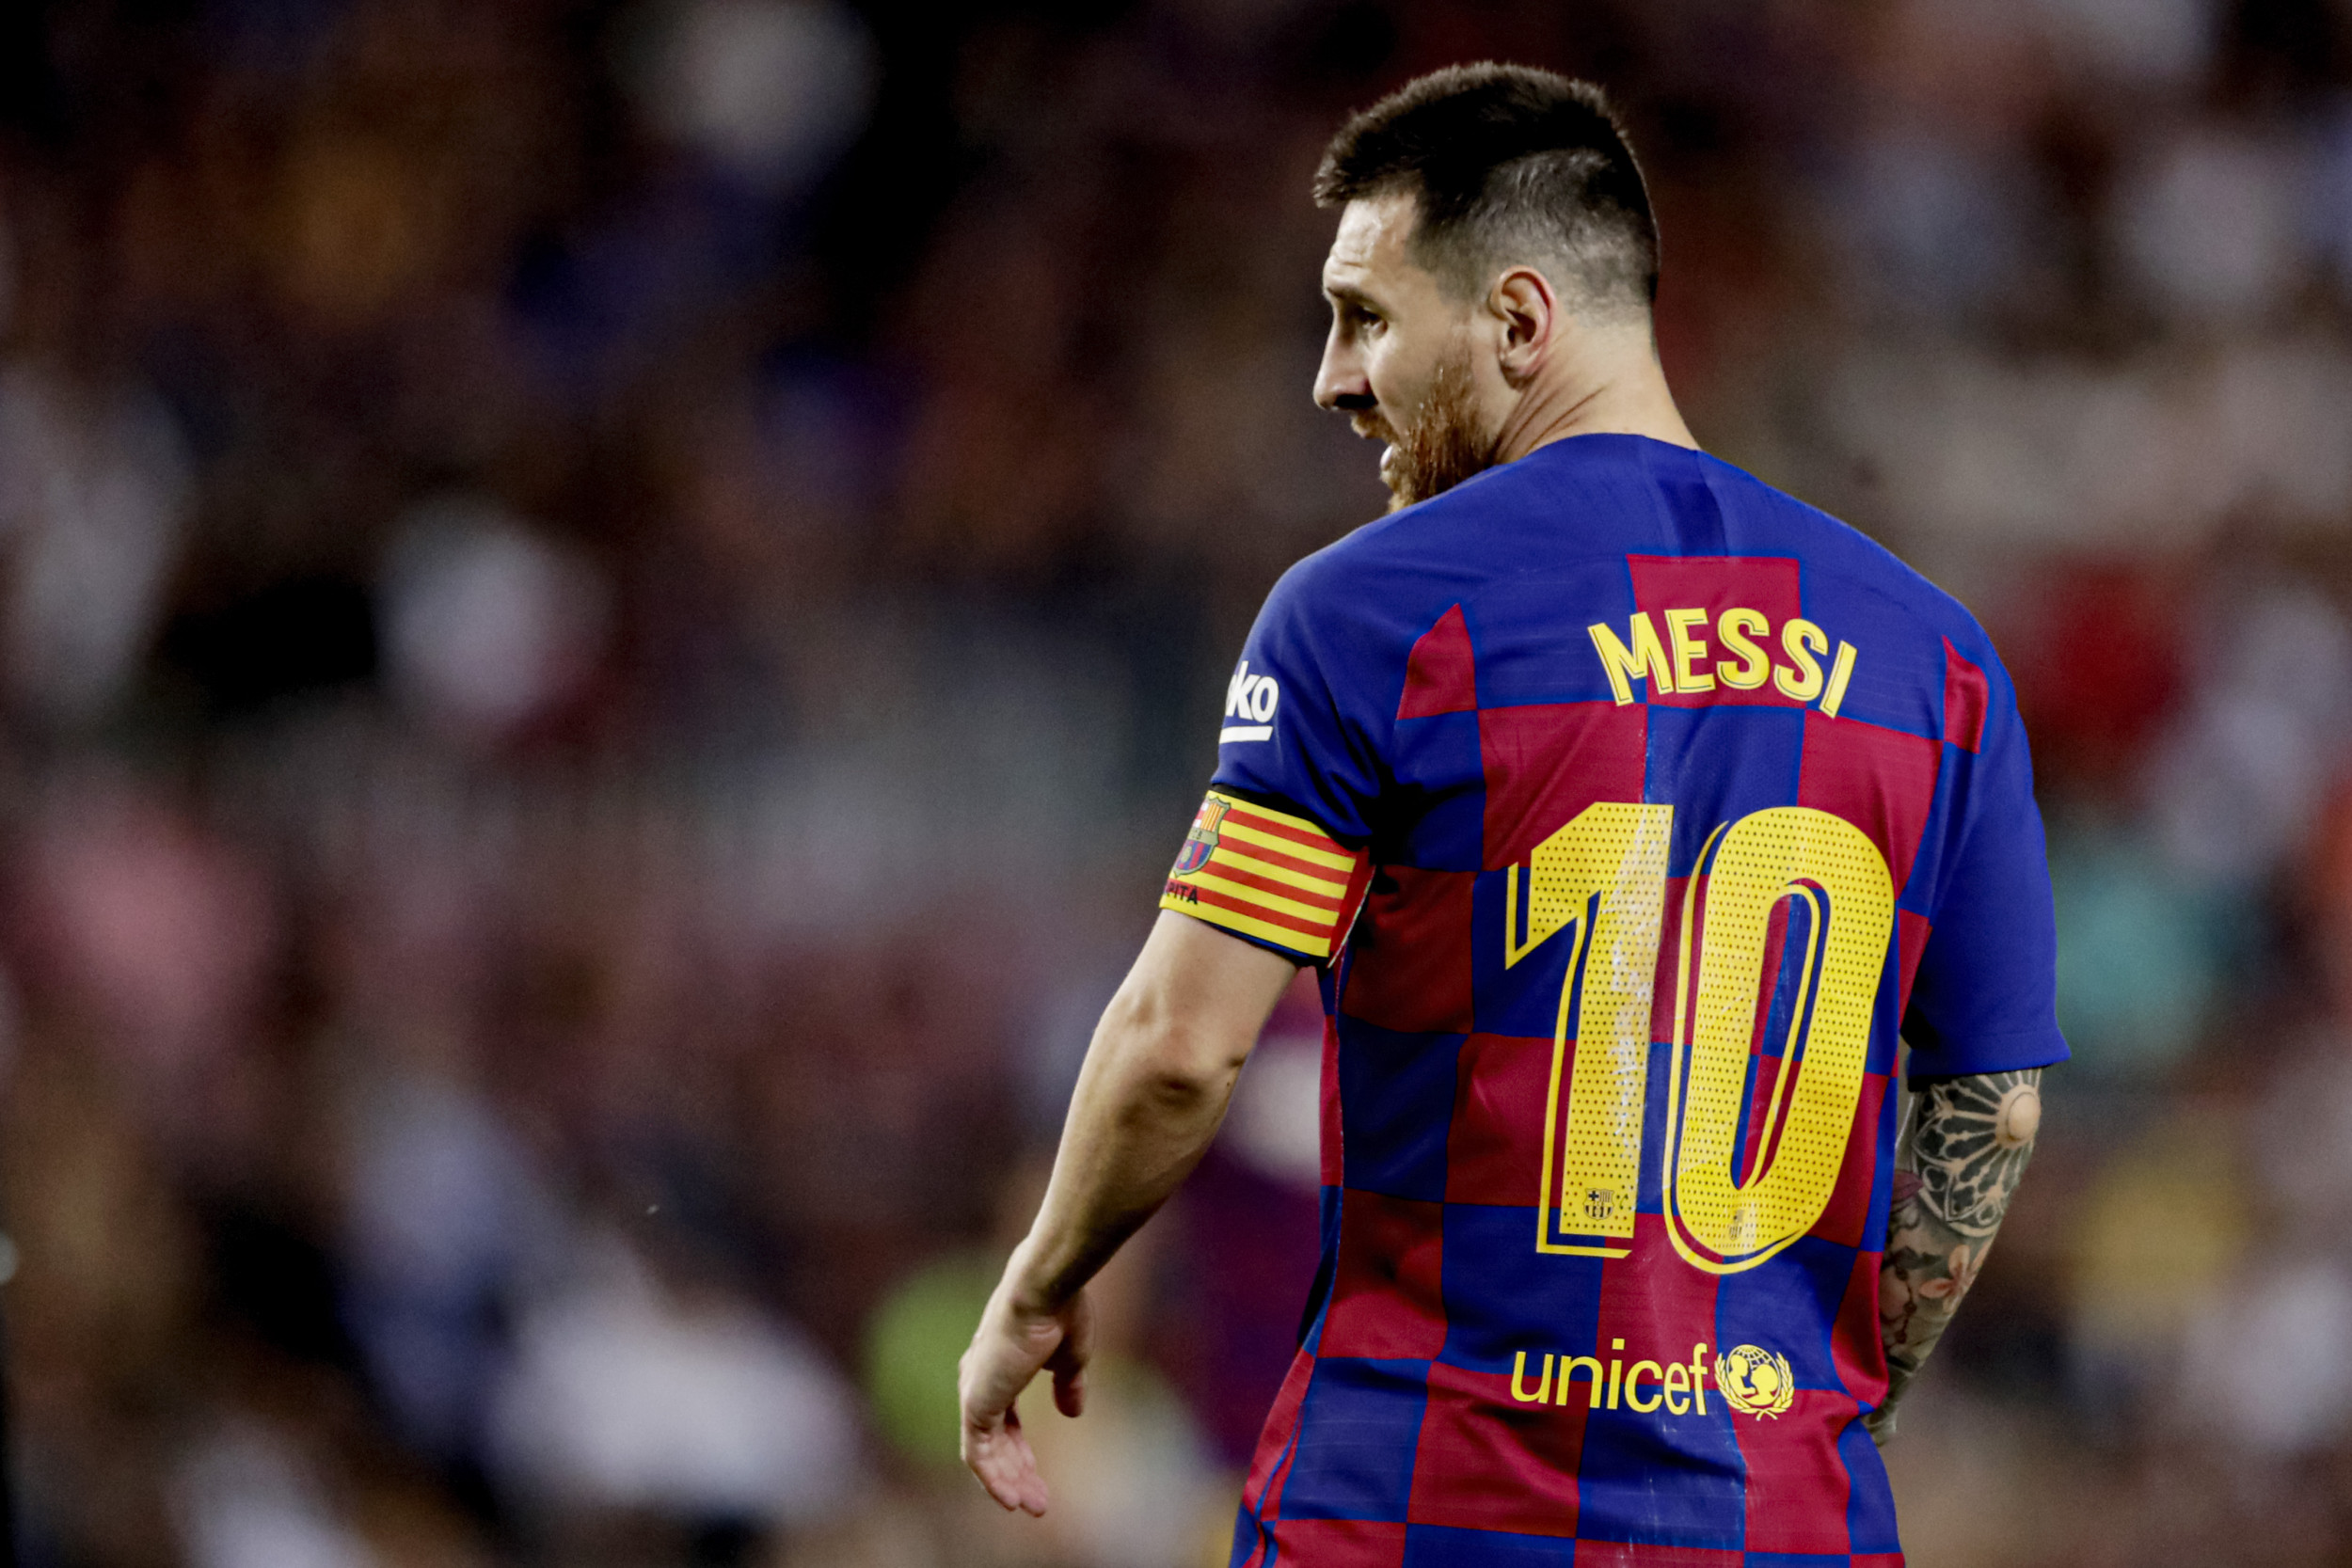 Barcelona vs. Inter Milan: Where to watch UEFA Champions League, TV channel, live stream, team news and odds